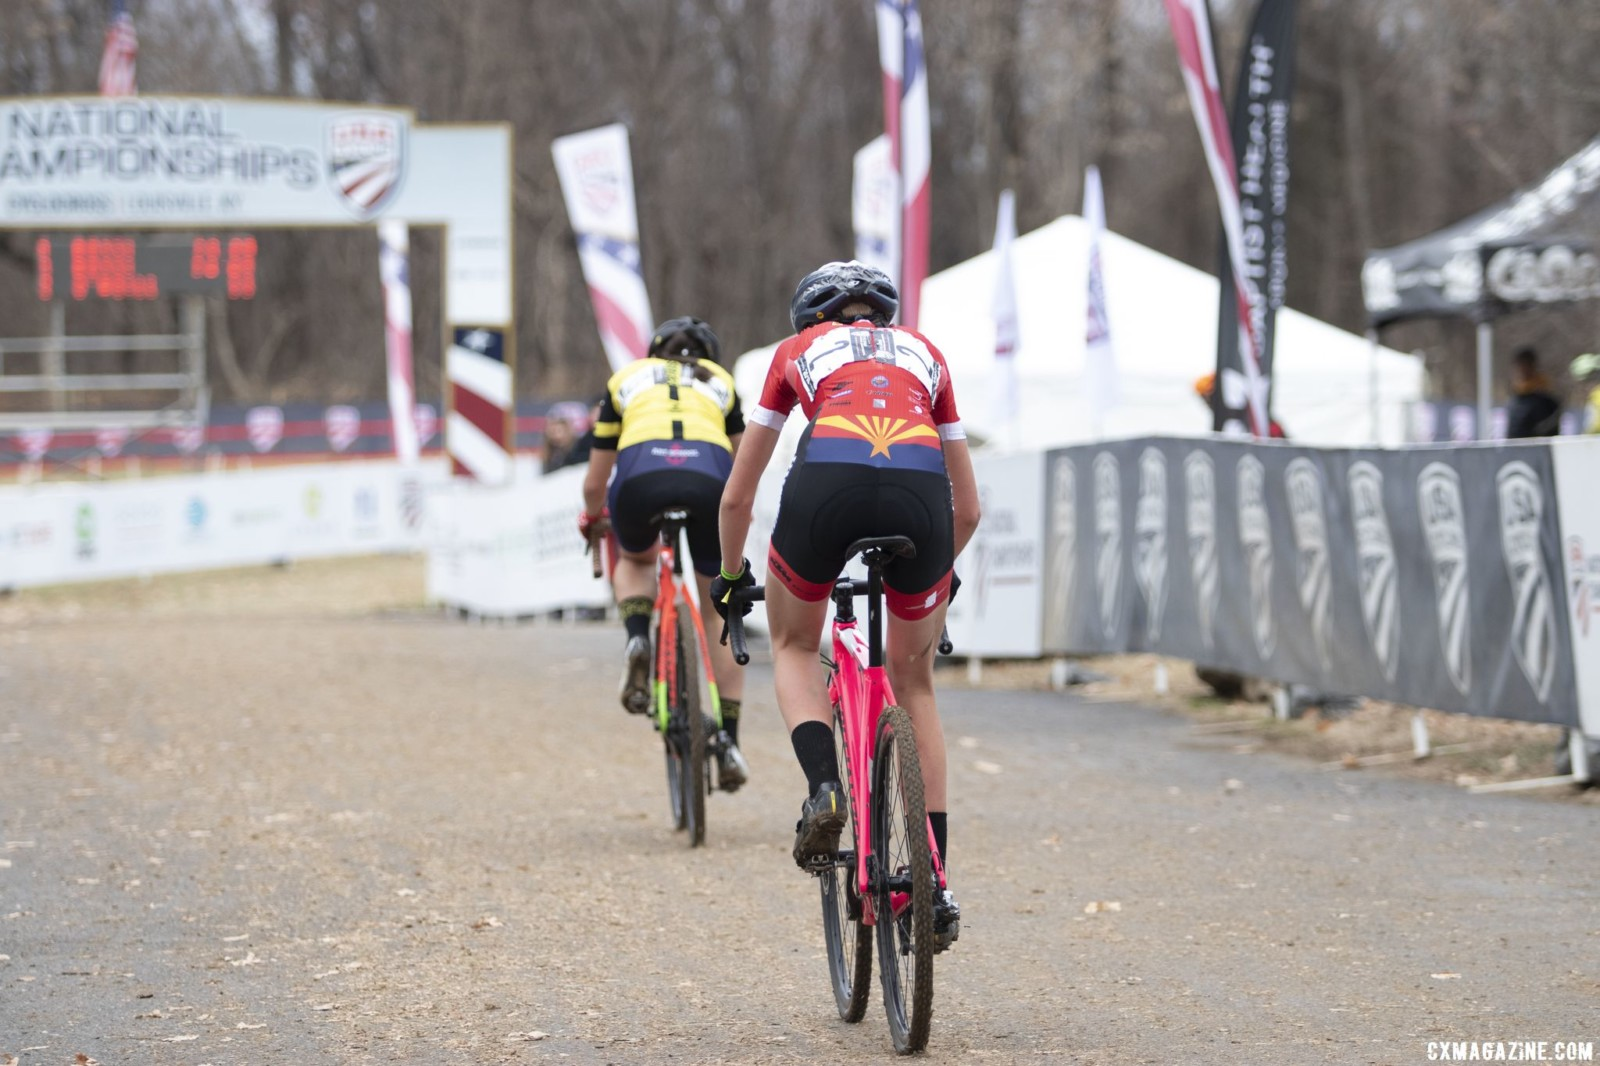 Rossi exited the barriers with an insurmountable lead. Collegiate Club Women. 2018 Cyclocross National Championships, Louisville, KY. © A. Yee / Cyclocross Magazine